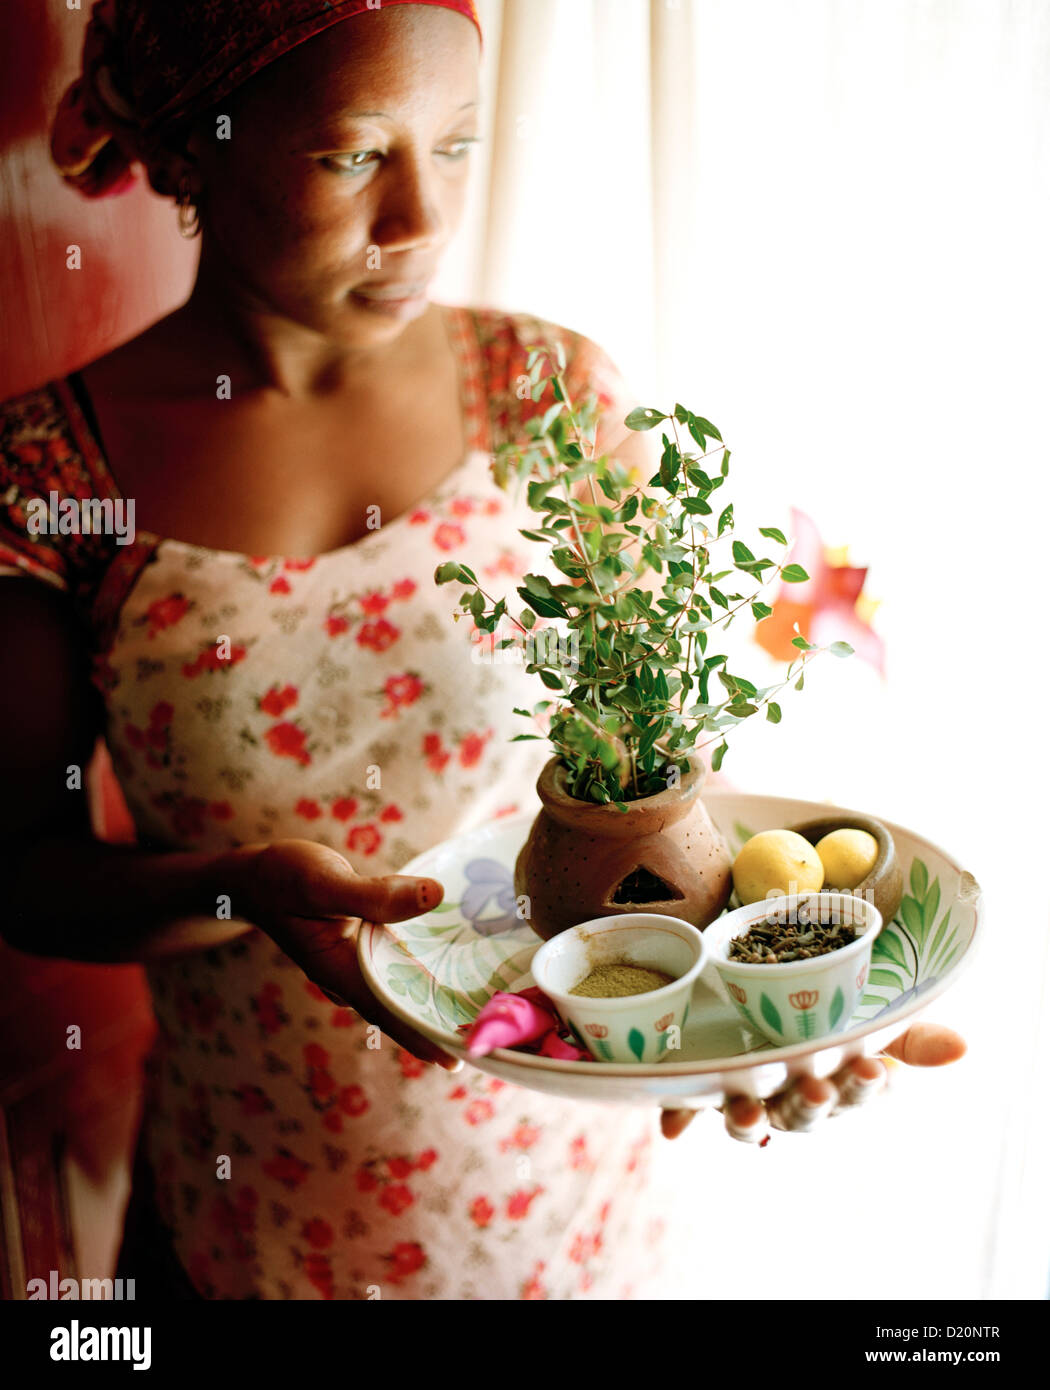 Therapist Acha shows ingredients for henna paste, Mrembo Spa, Mrembo means beautiful woman, old house in the center - Stock Image